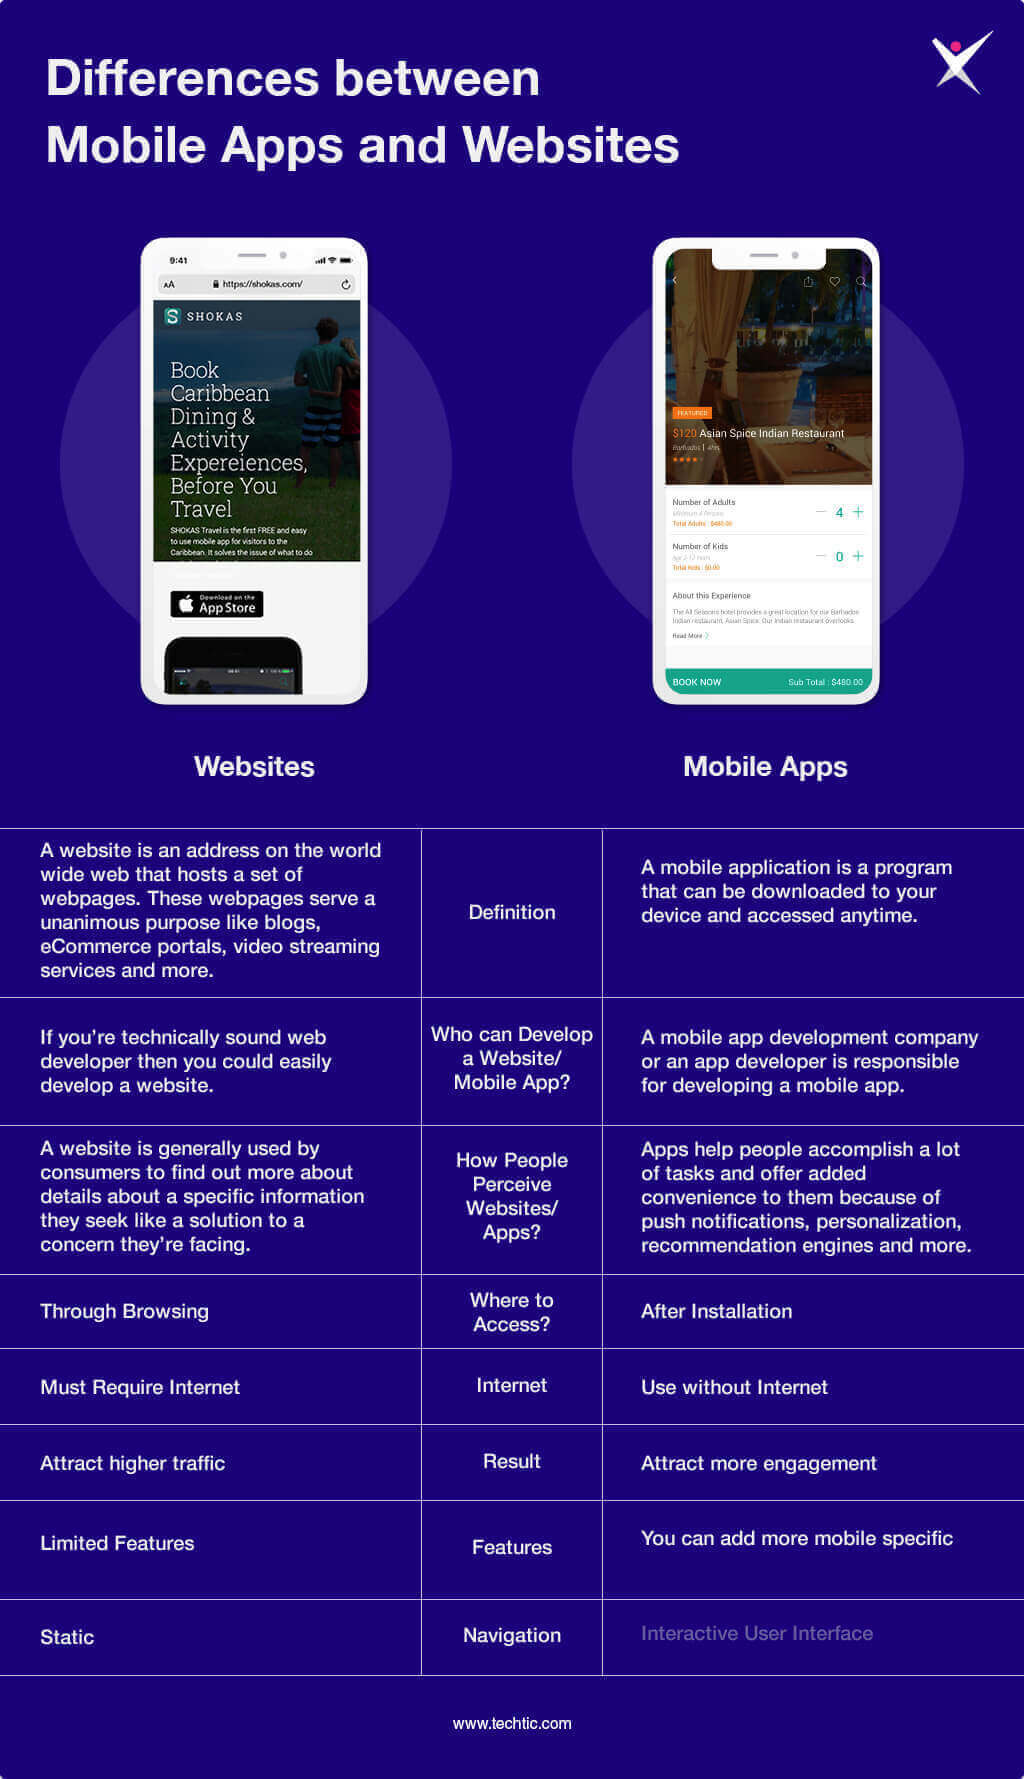 Differences between Mobile Apps and Websites Chart